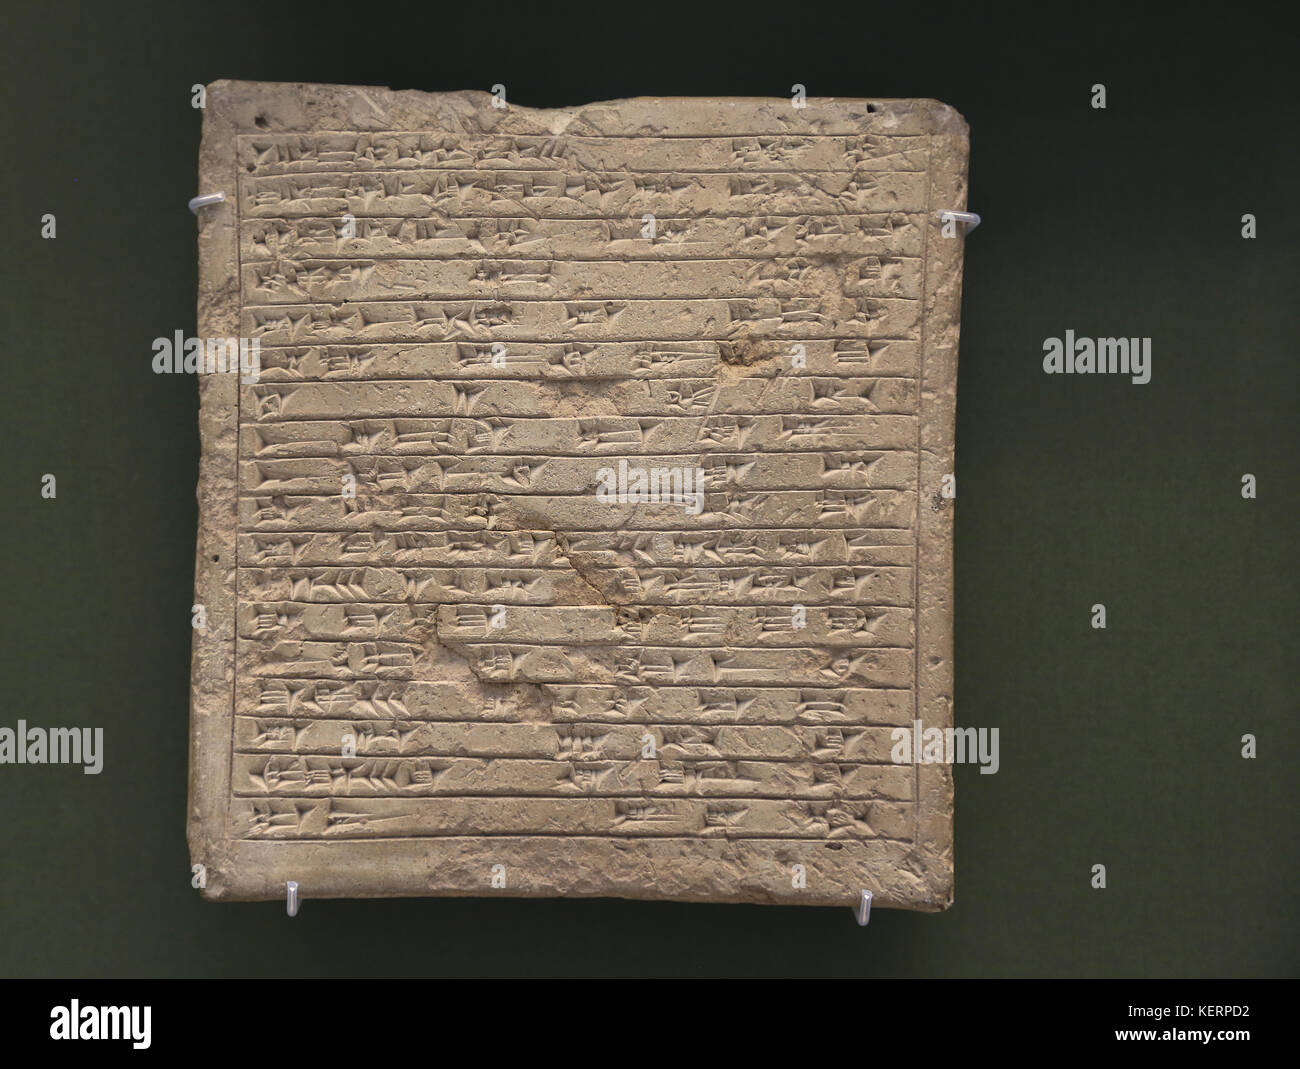 Tablet commemorates building of house. Reign of King Ashur-Uballit I. 1363-1328 BC. Ashur. Iraq. British Museum. Stock Photo